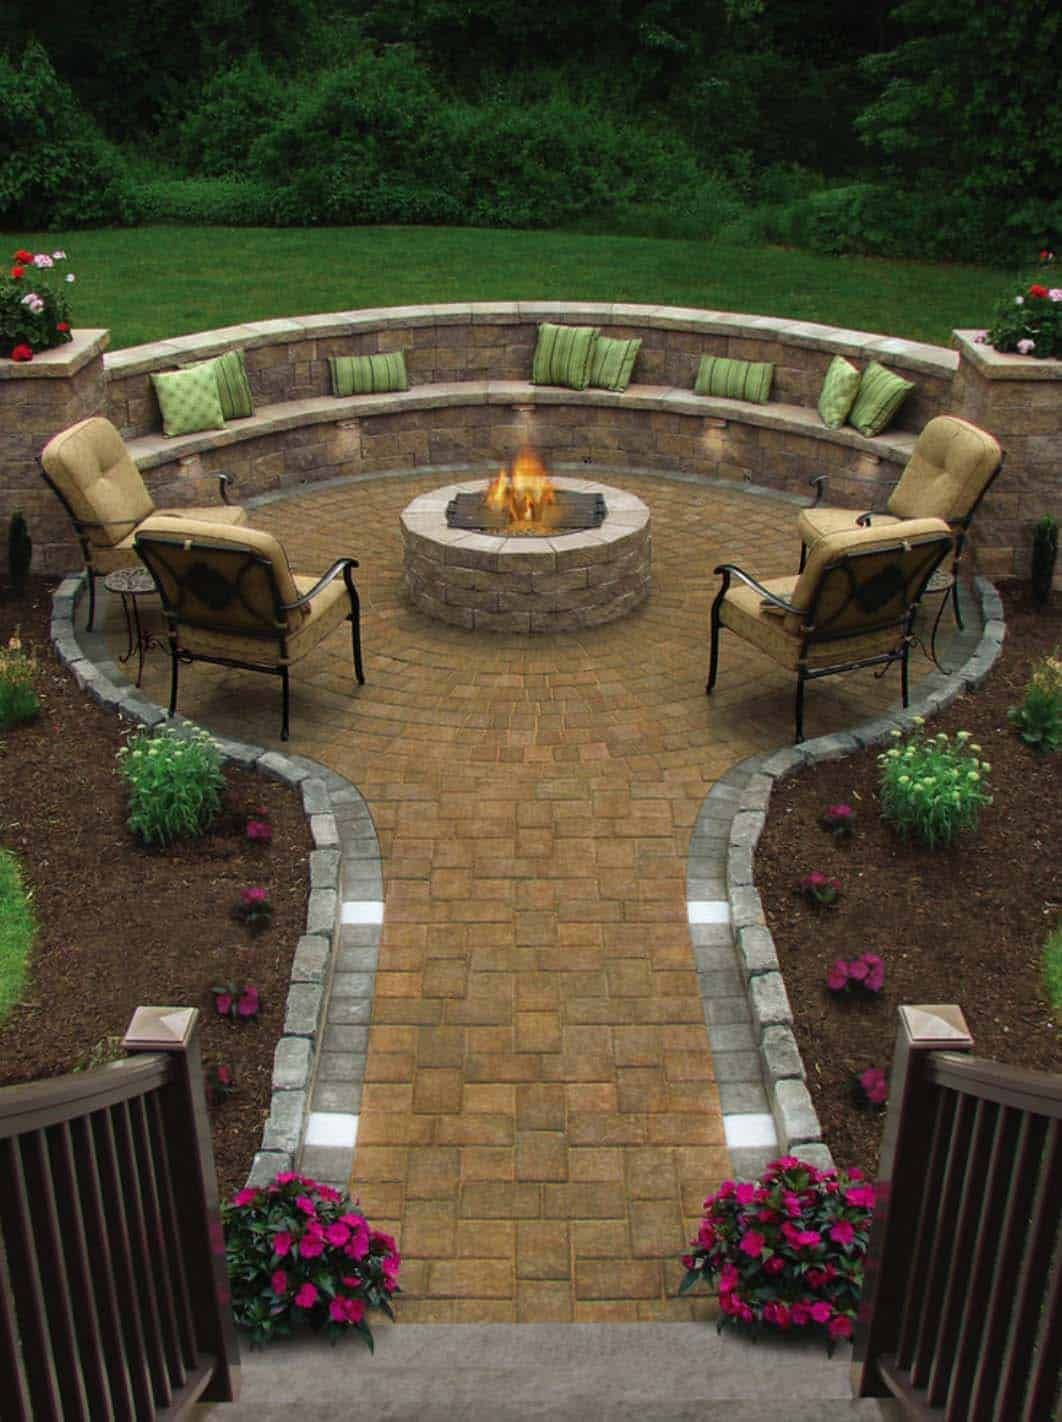 28 Inspiring Fire Pit Ideas To Create A Fabulous Backyard Oasis #backyardoasis